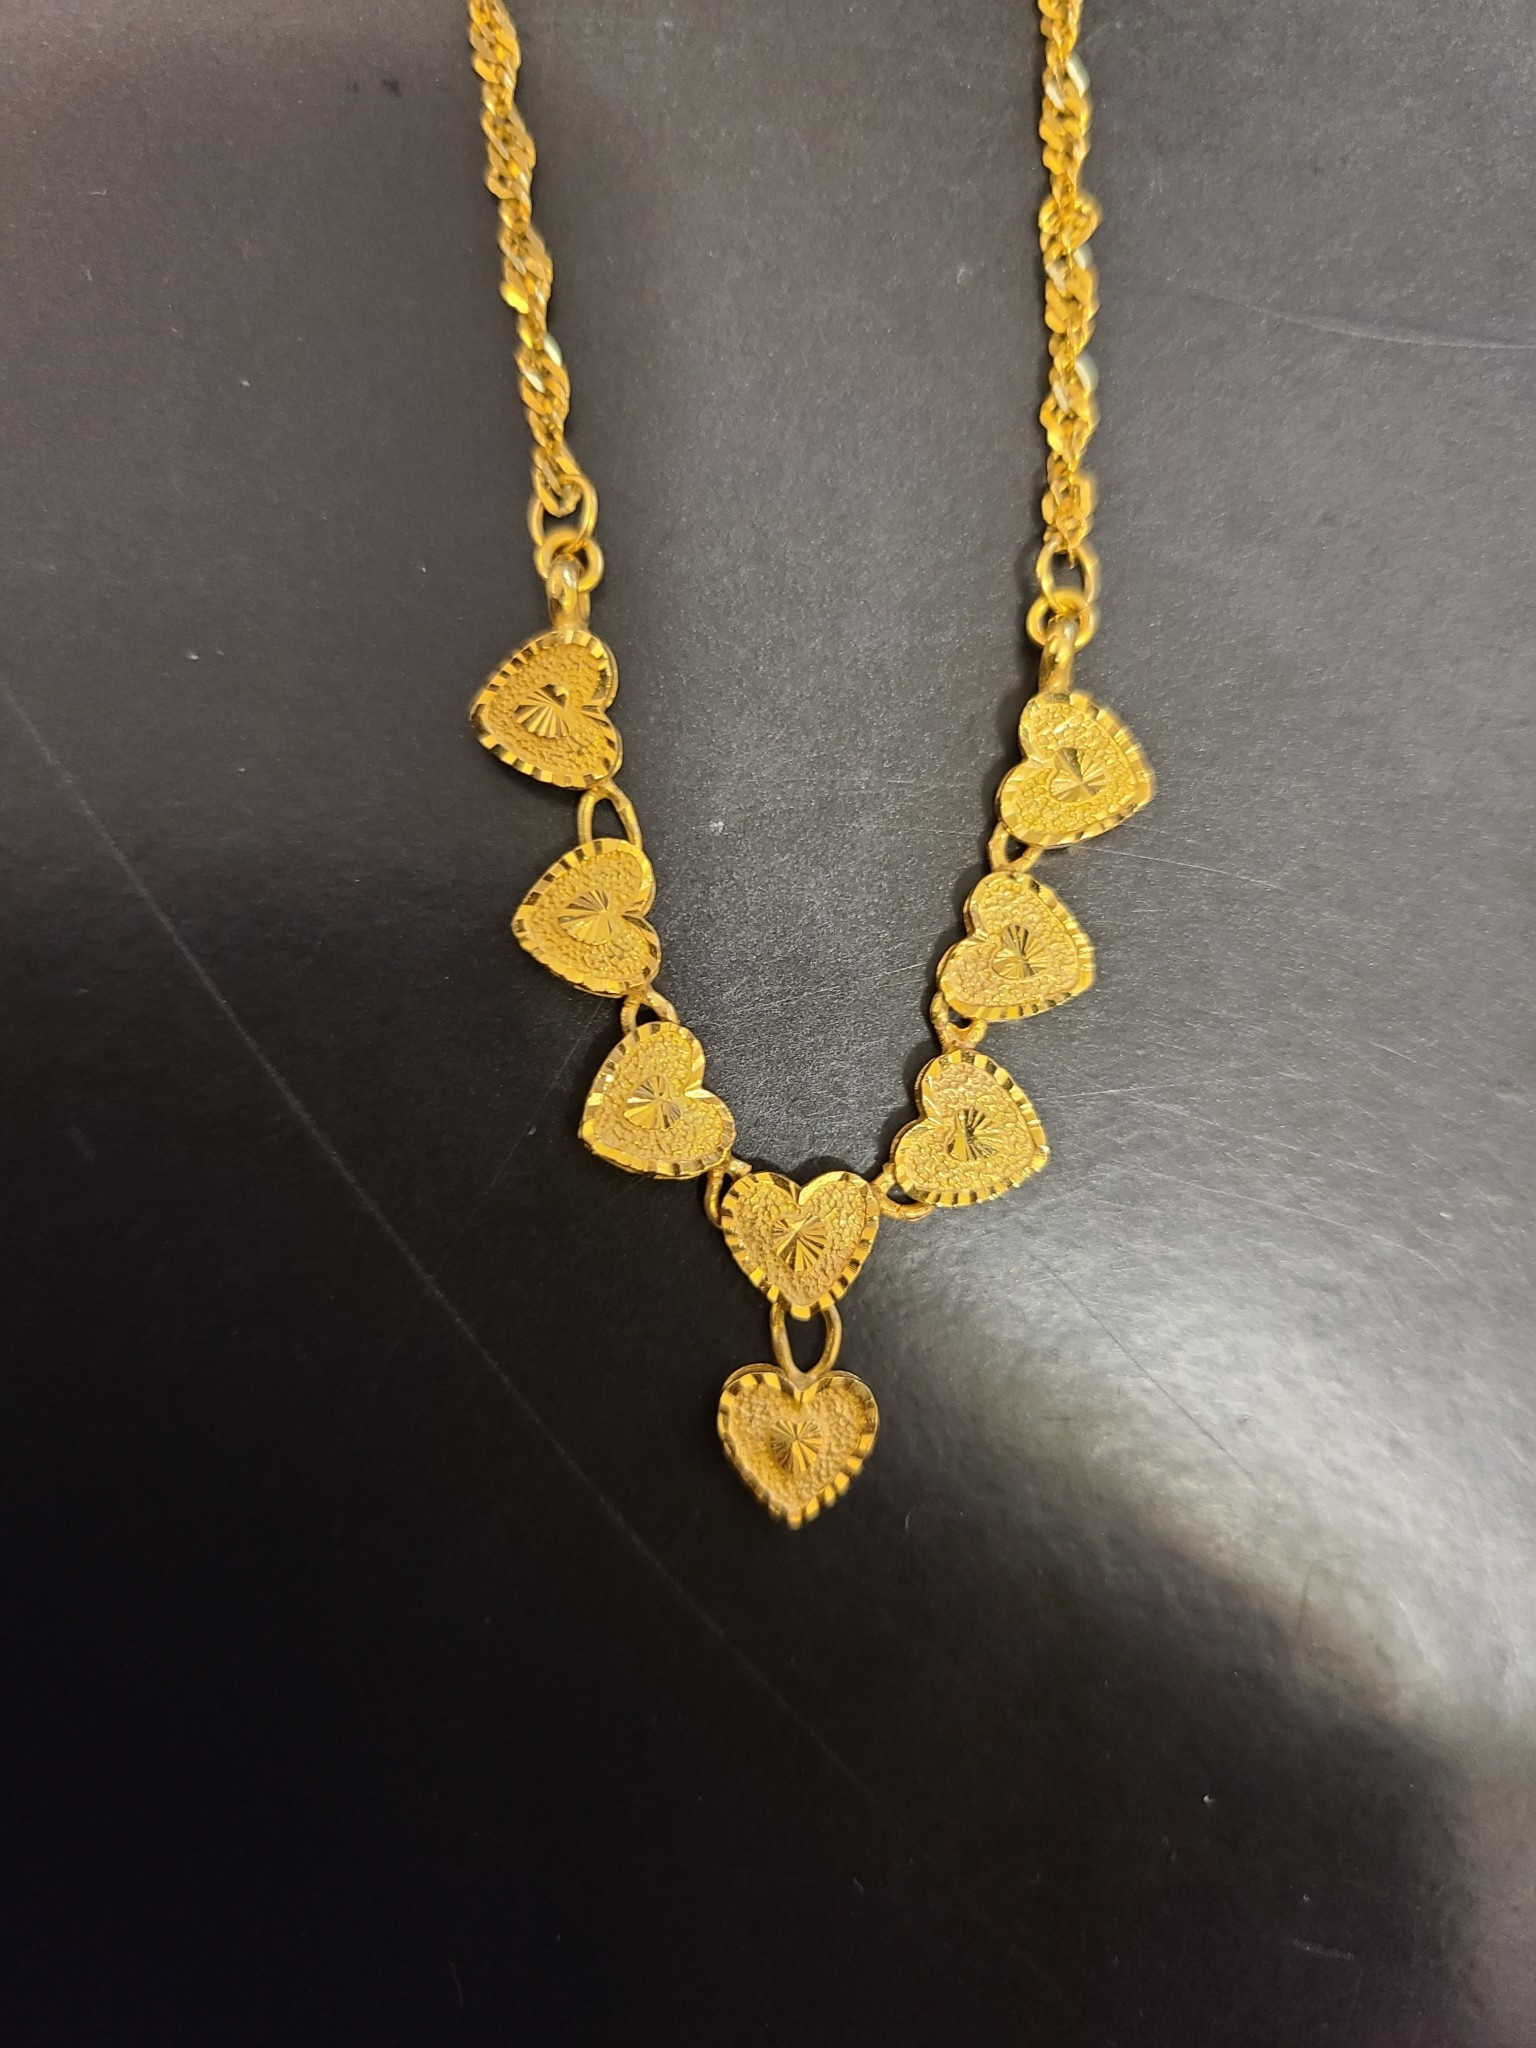 22kt yg, 18 inch heart necklace